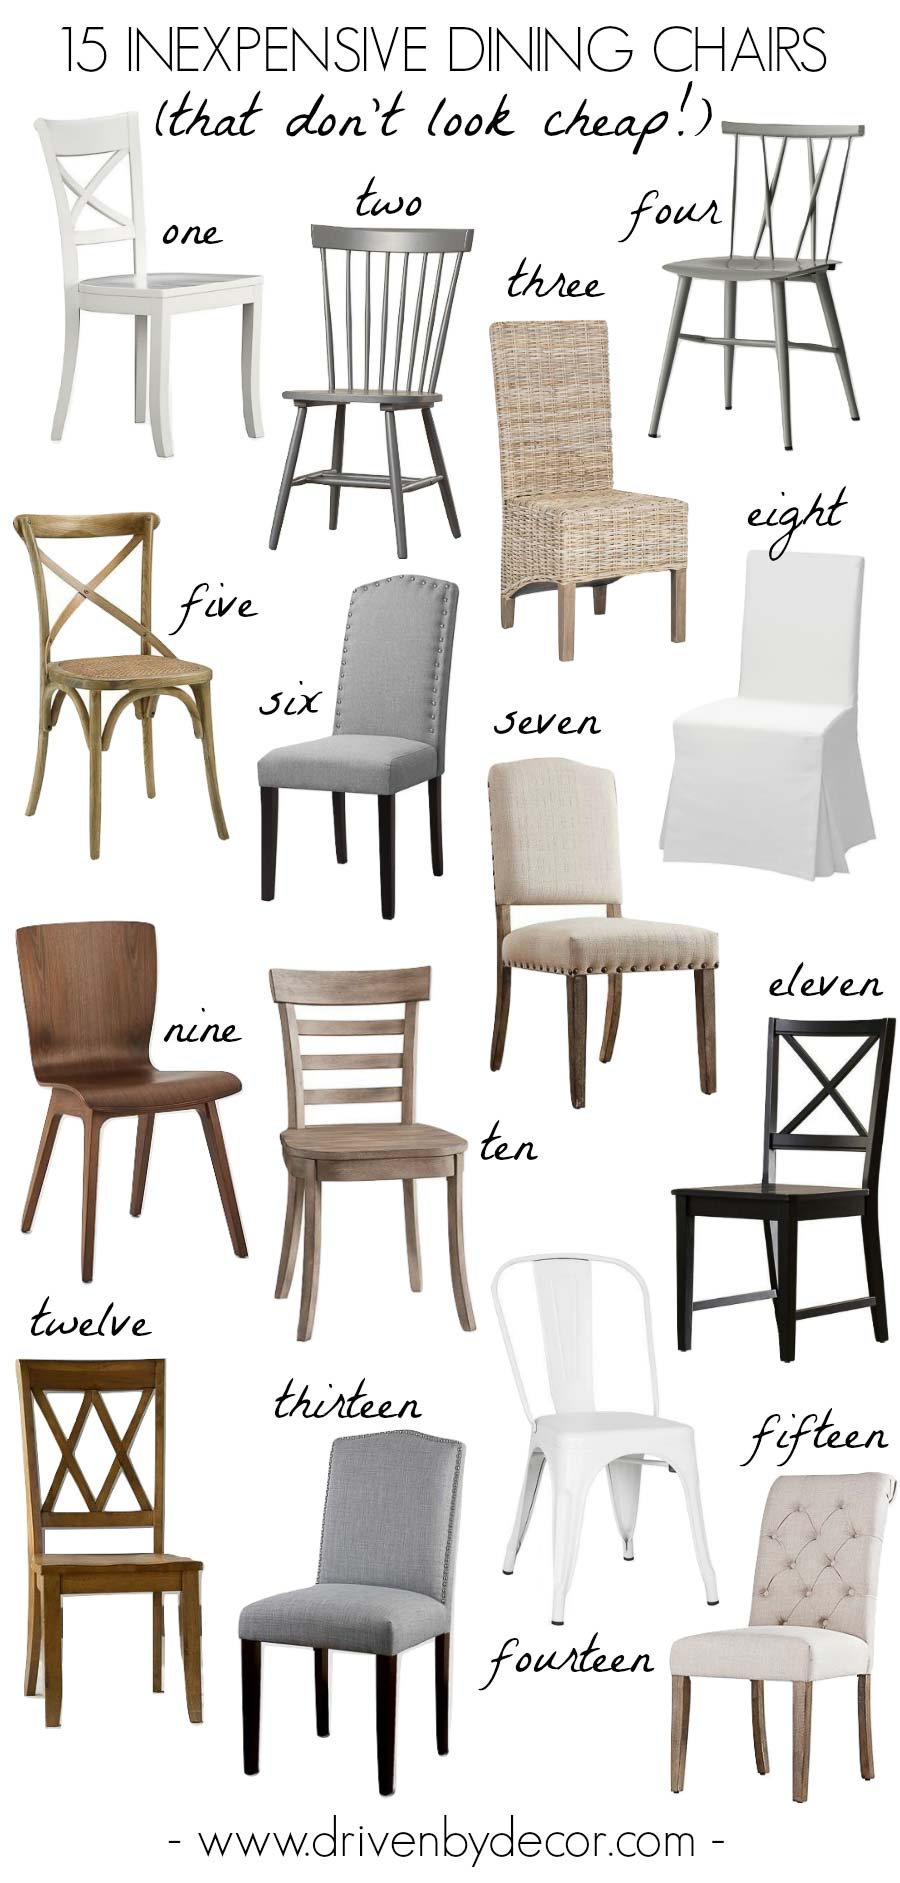 Pleasant 15 Inexpensive Dining Chairs That Dont Look Cheap Machost Co Dining Chair Design Ideas Machostcouk